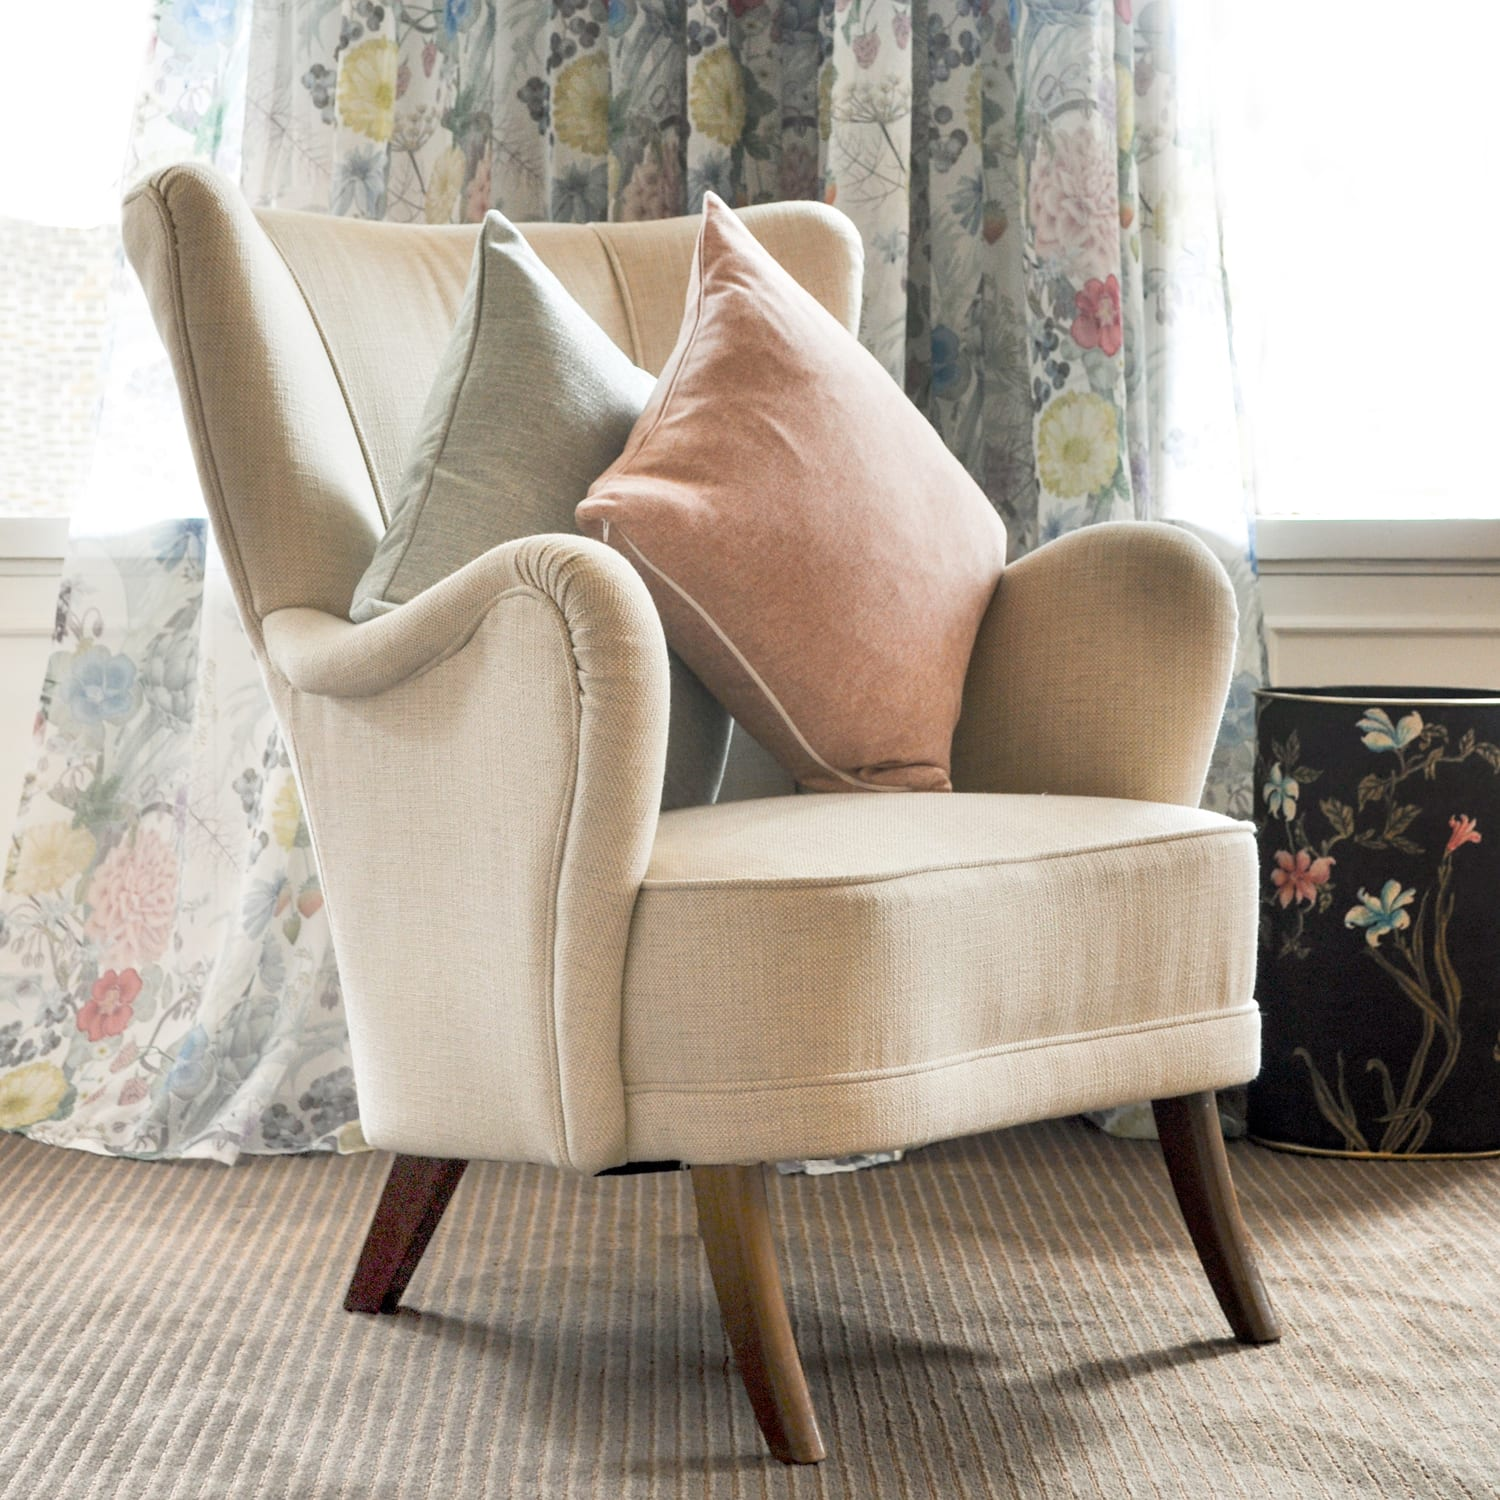 Jenny Blanc Cushion in 'Denim'